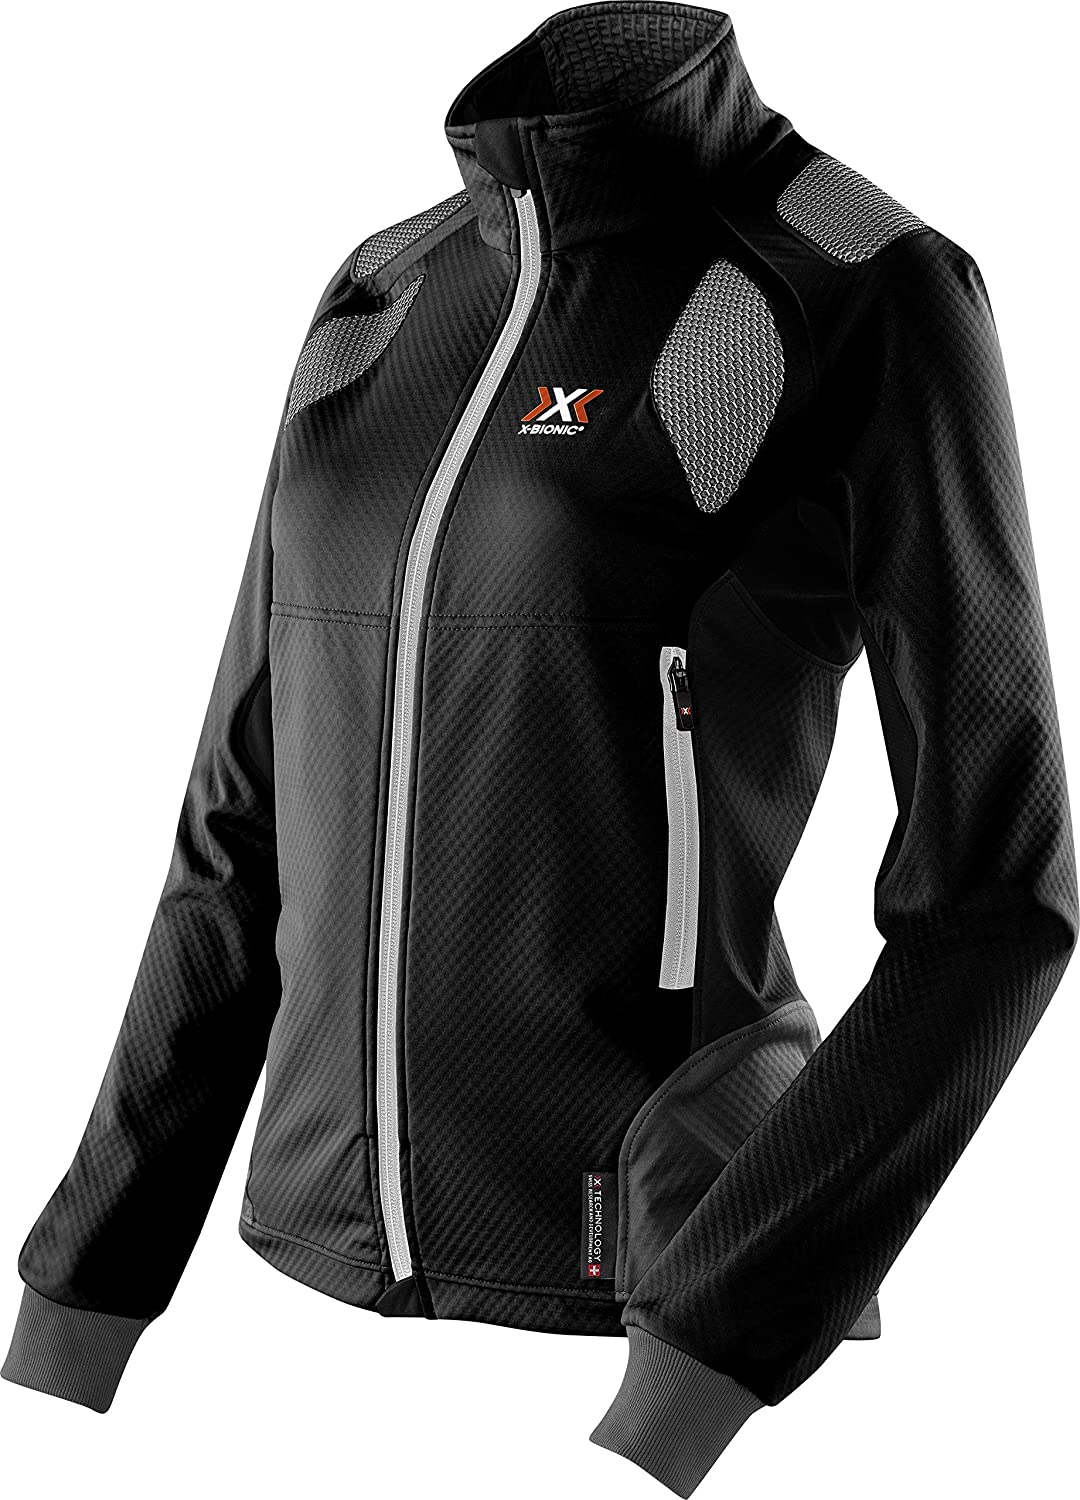 X-Bionic Damen Ski Touring Light Lady Ow Jacket Jacke TRERE INNOVATION S.R.L. de sporting goods XBIOO O100392